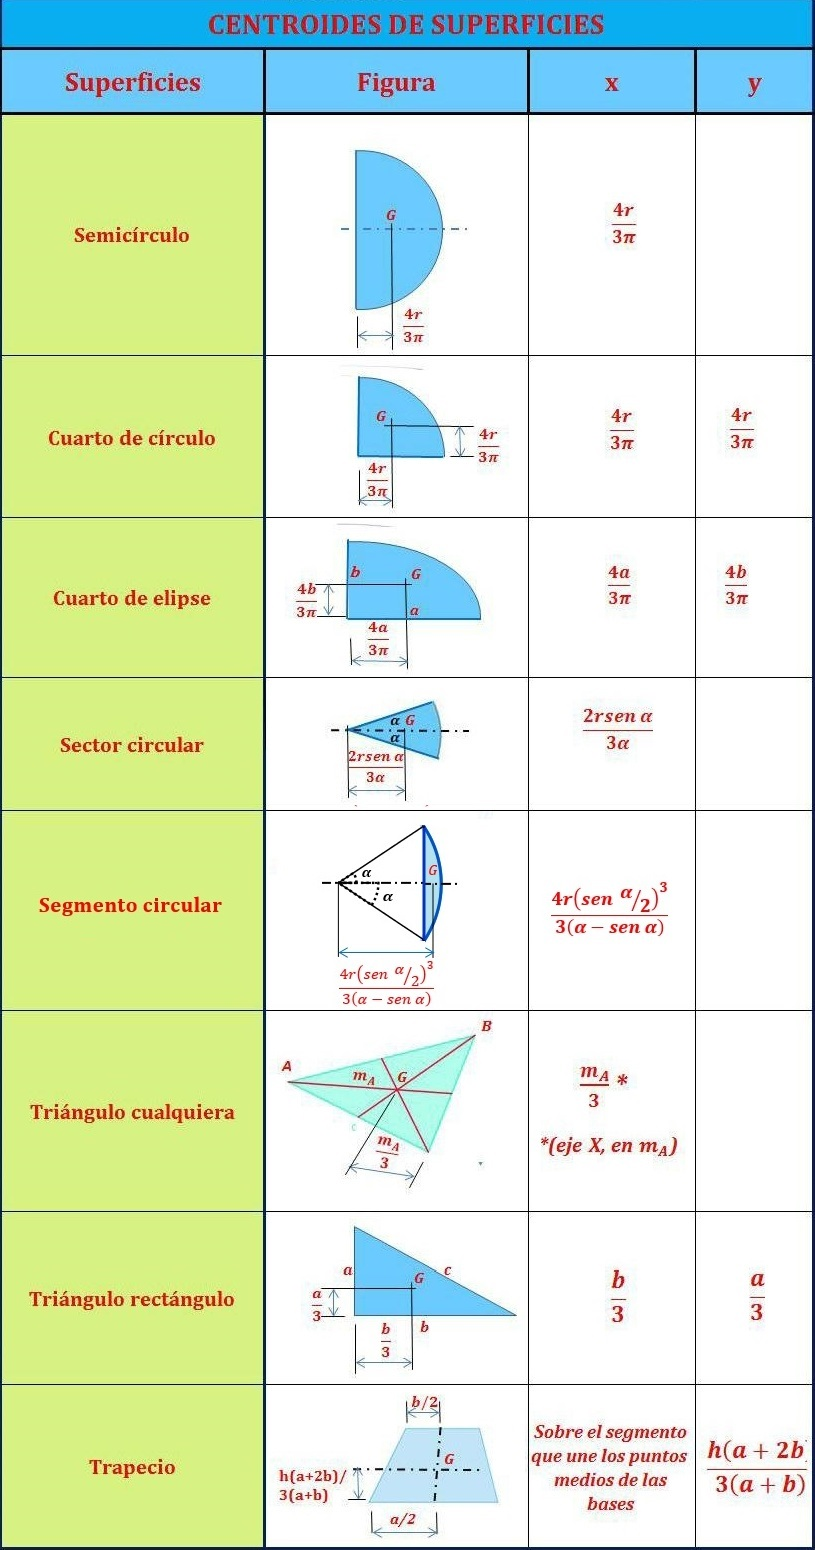 Tabla del centroide de superficies en el plano